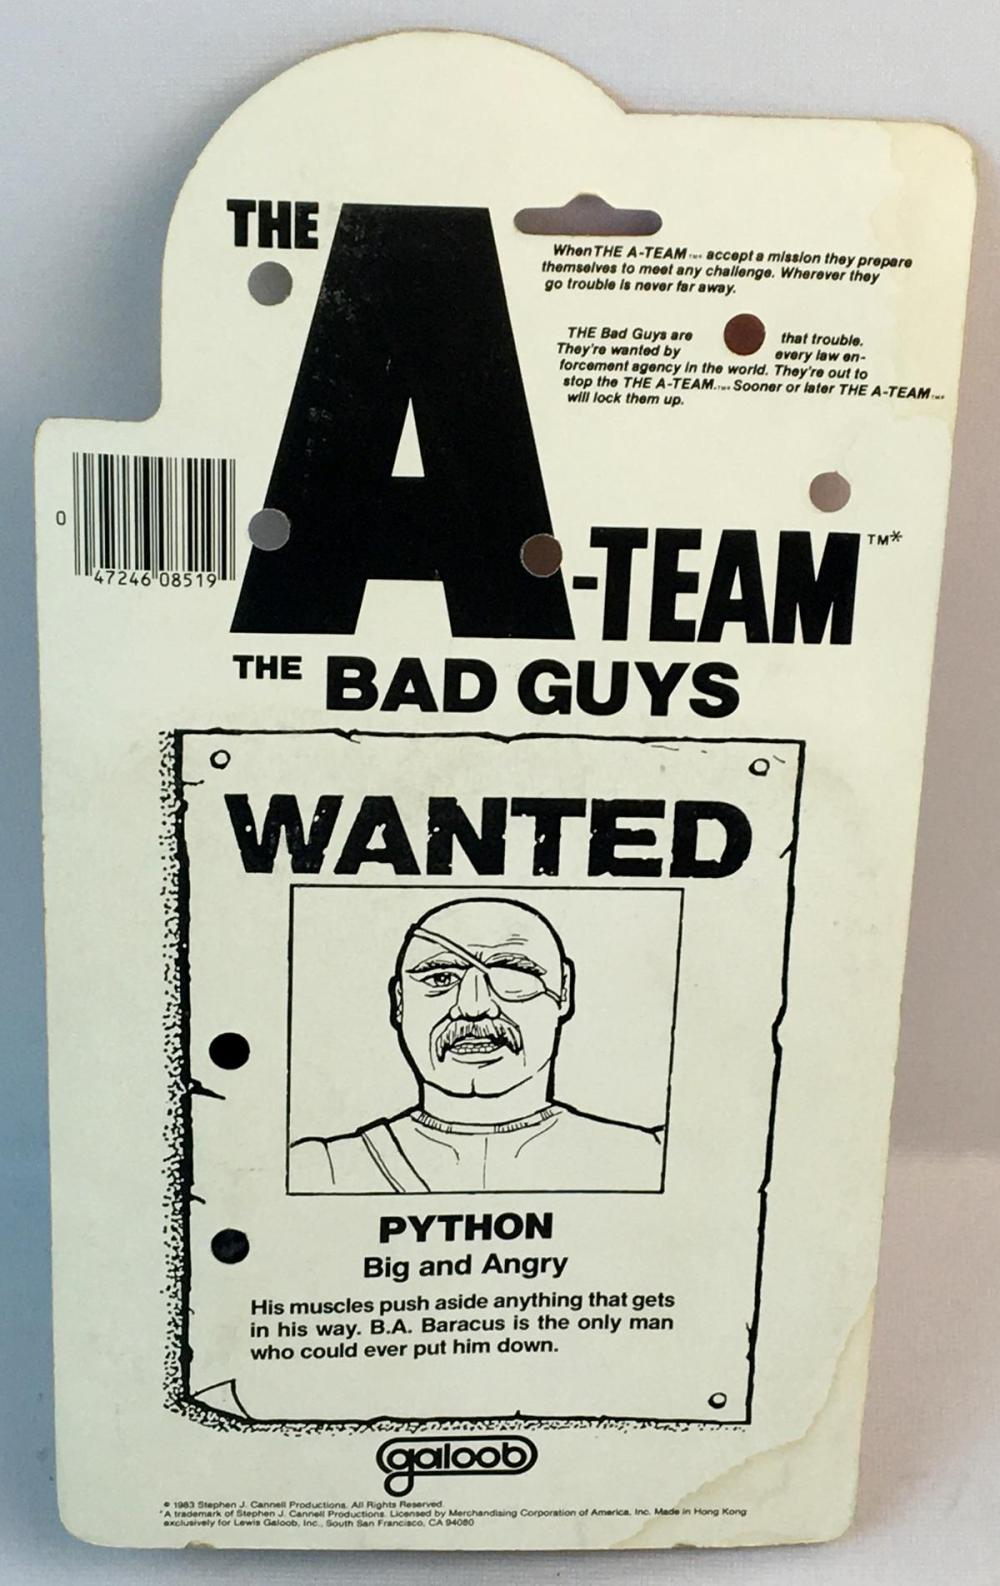 Vintage 1983 The A-Team The Bad Guys